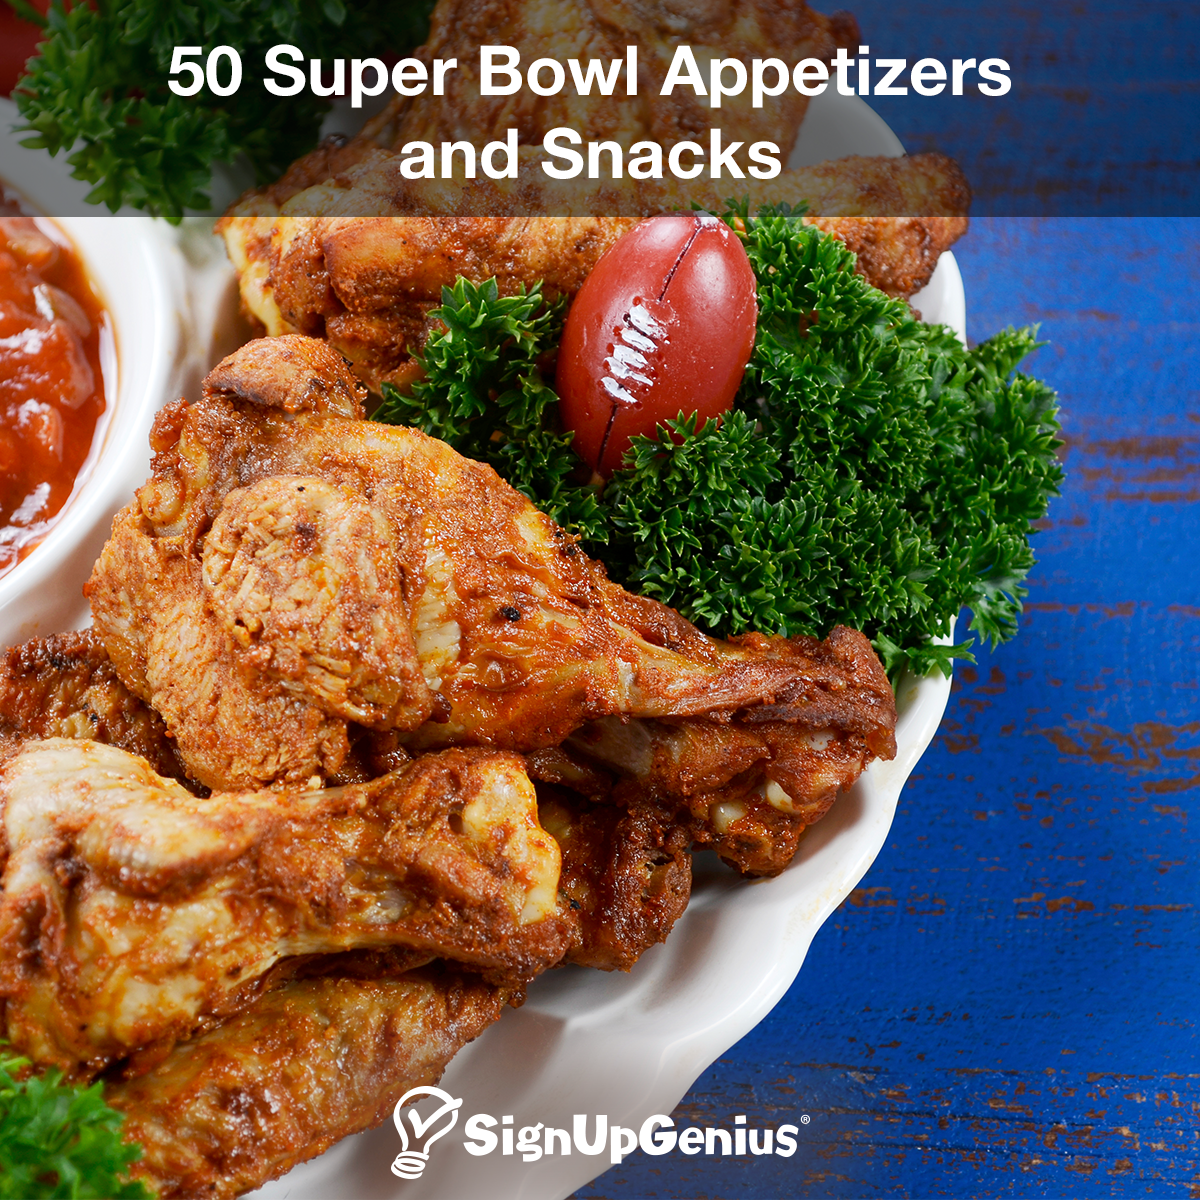 50 super bowl appetizers and snack ideas. host a fun party with